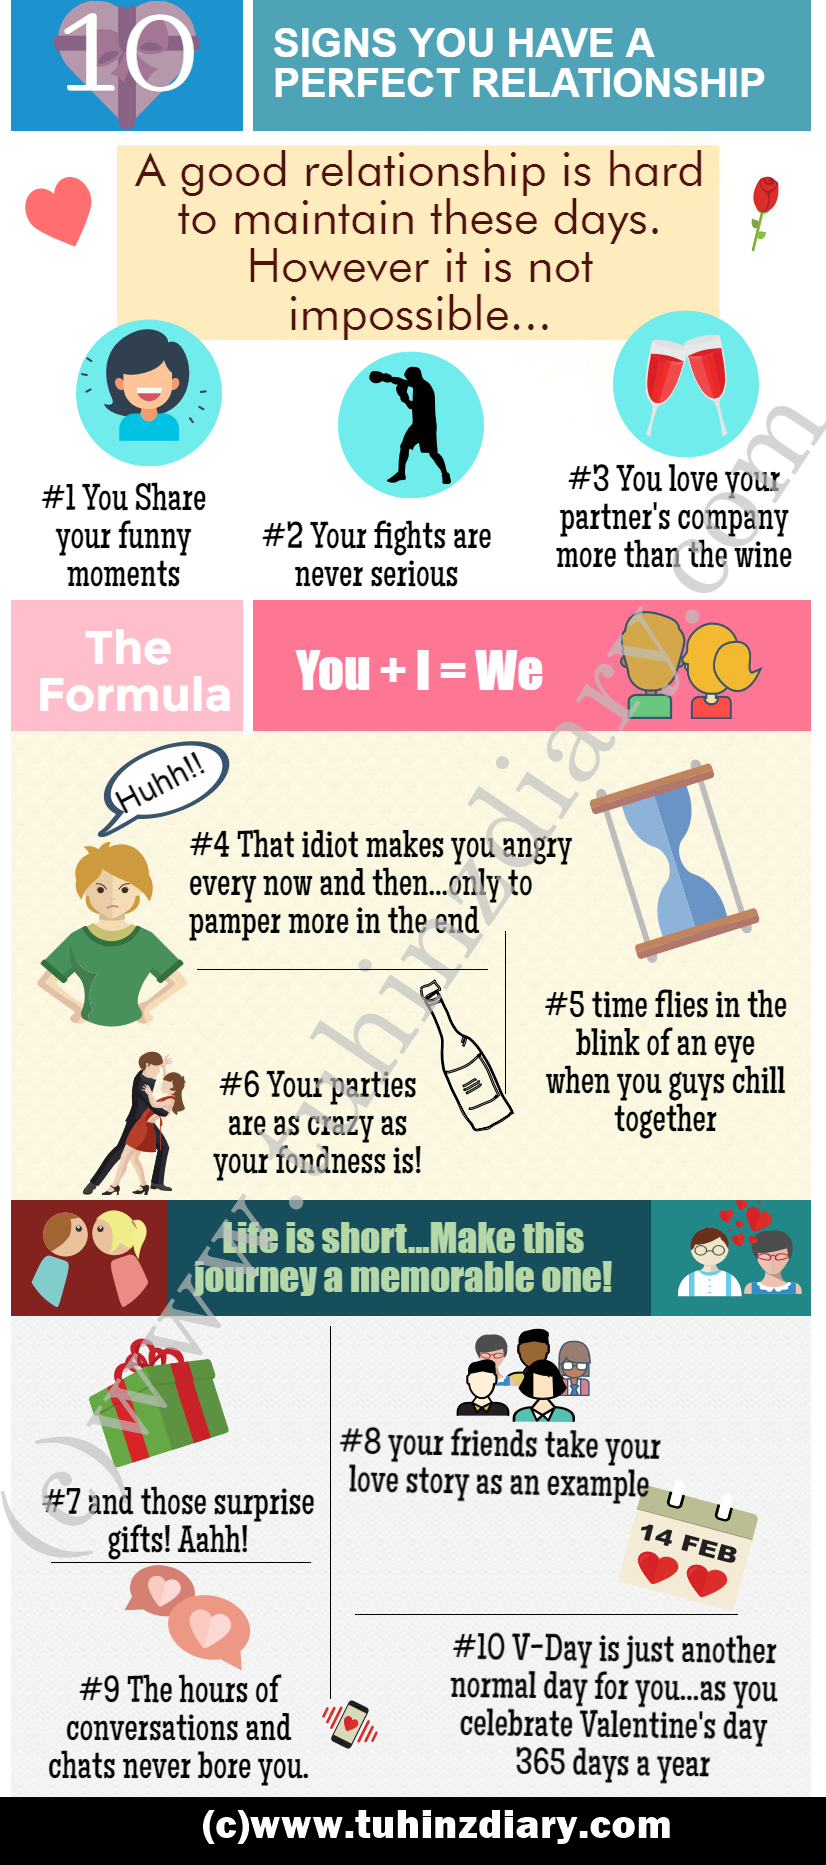 10 signs of a perfect relationship infograph